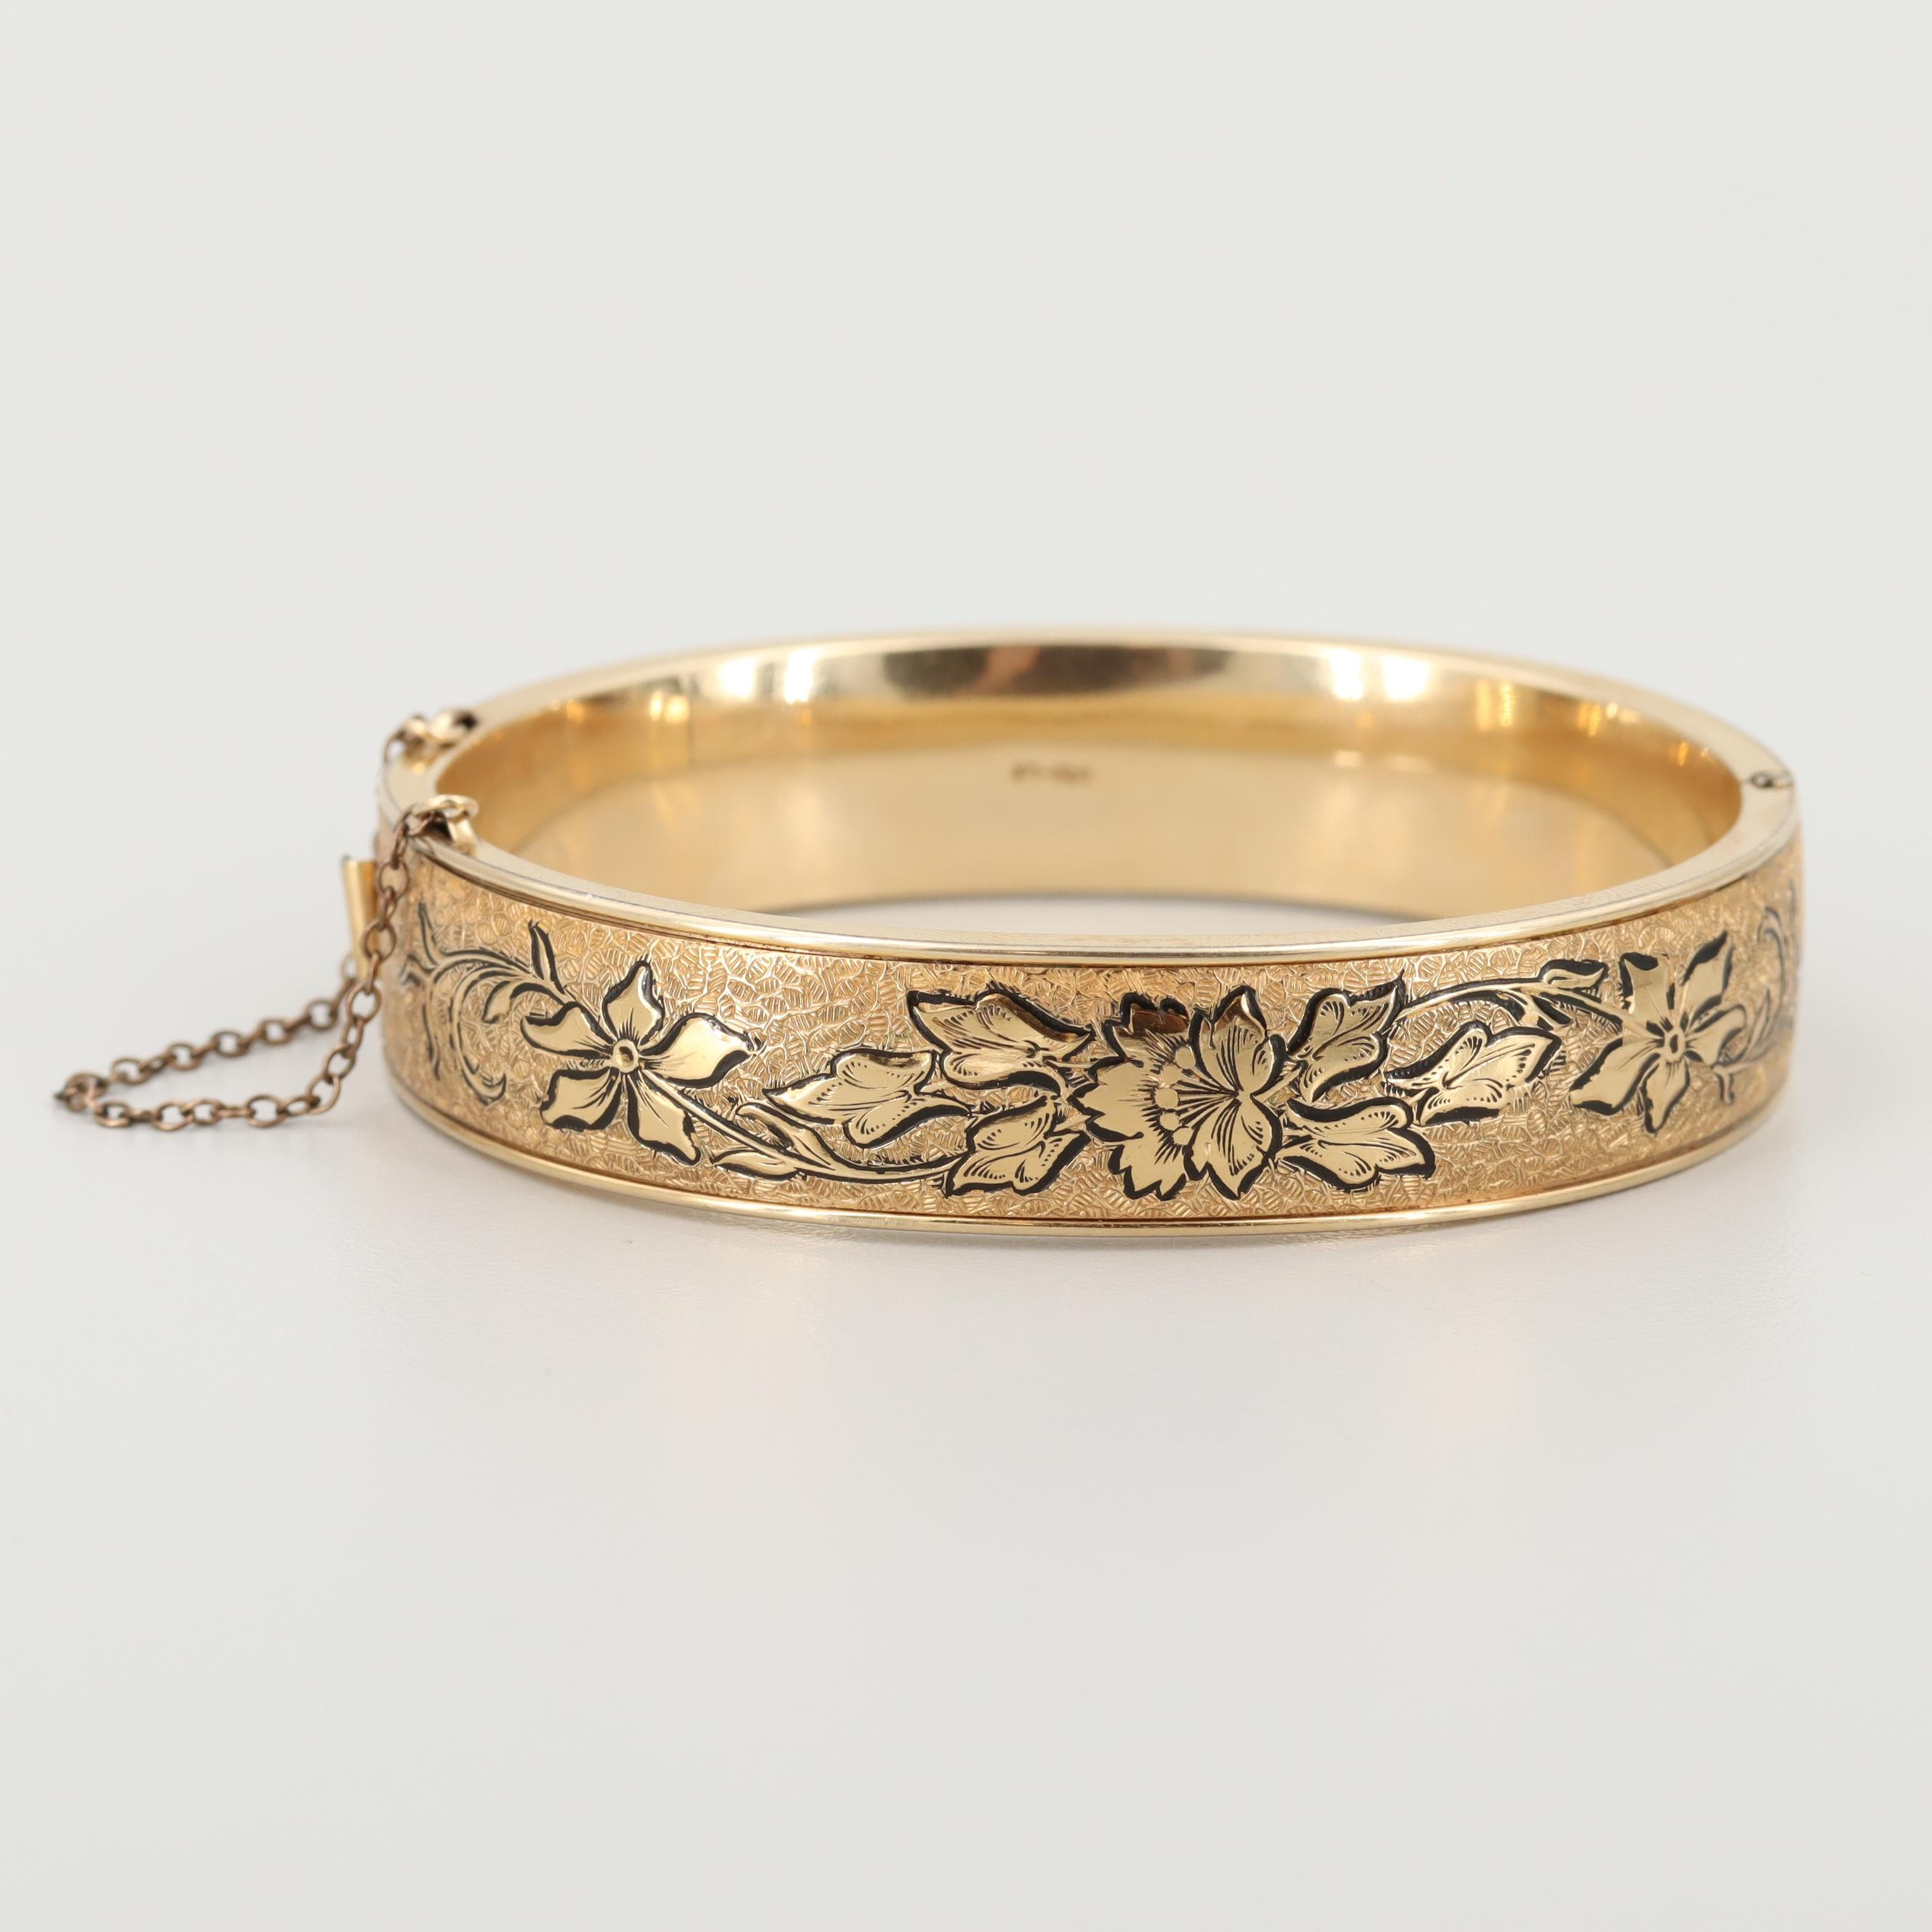 Vintage Gold Filled Hinged Bangle